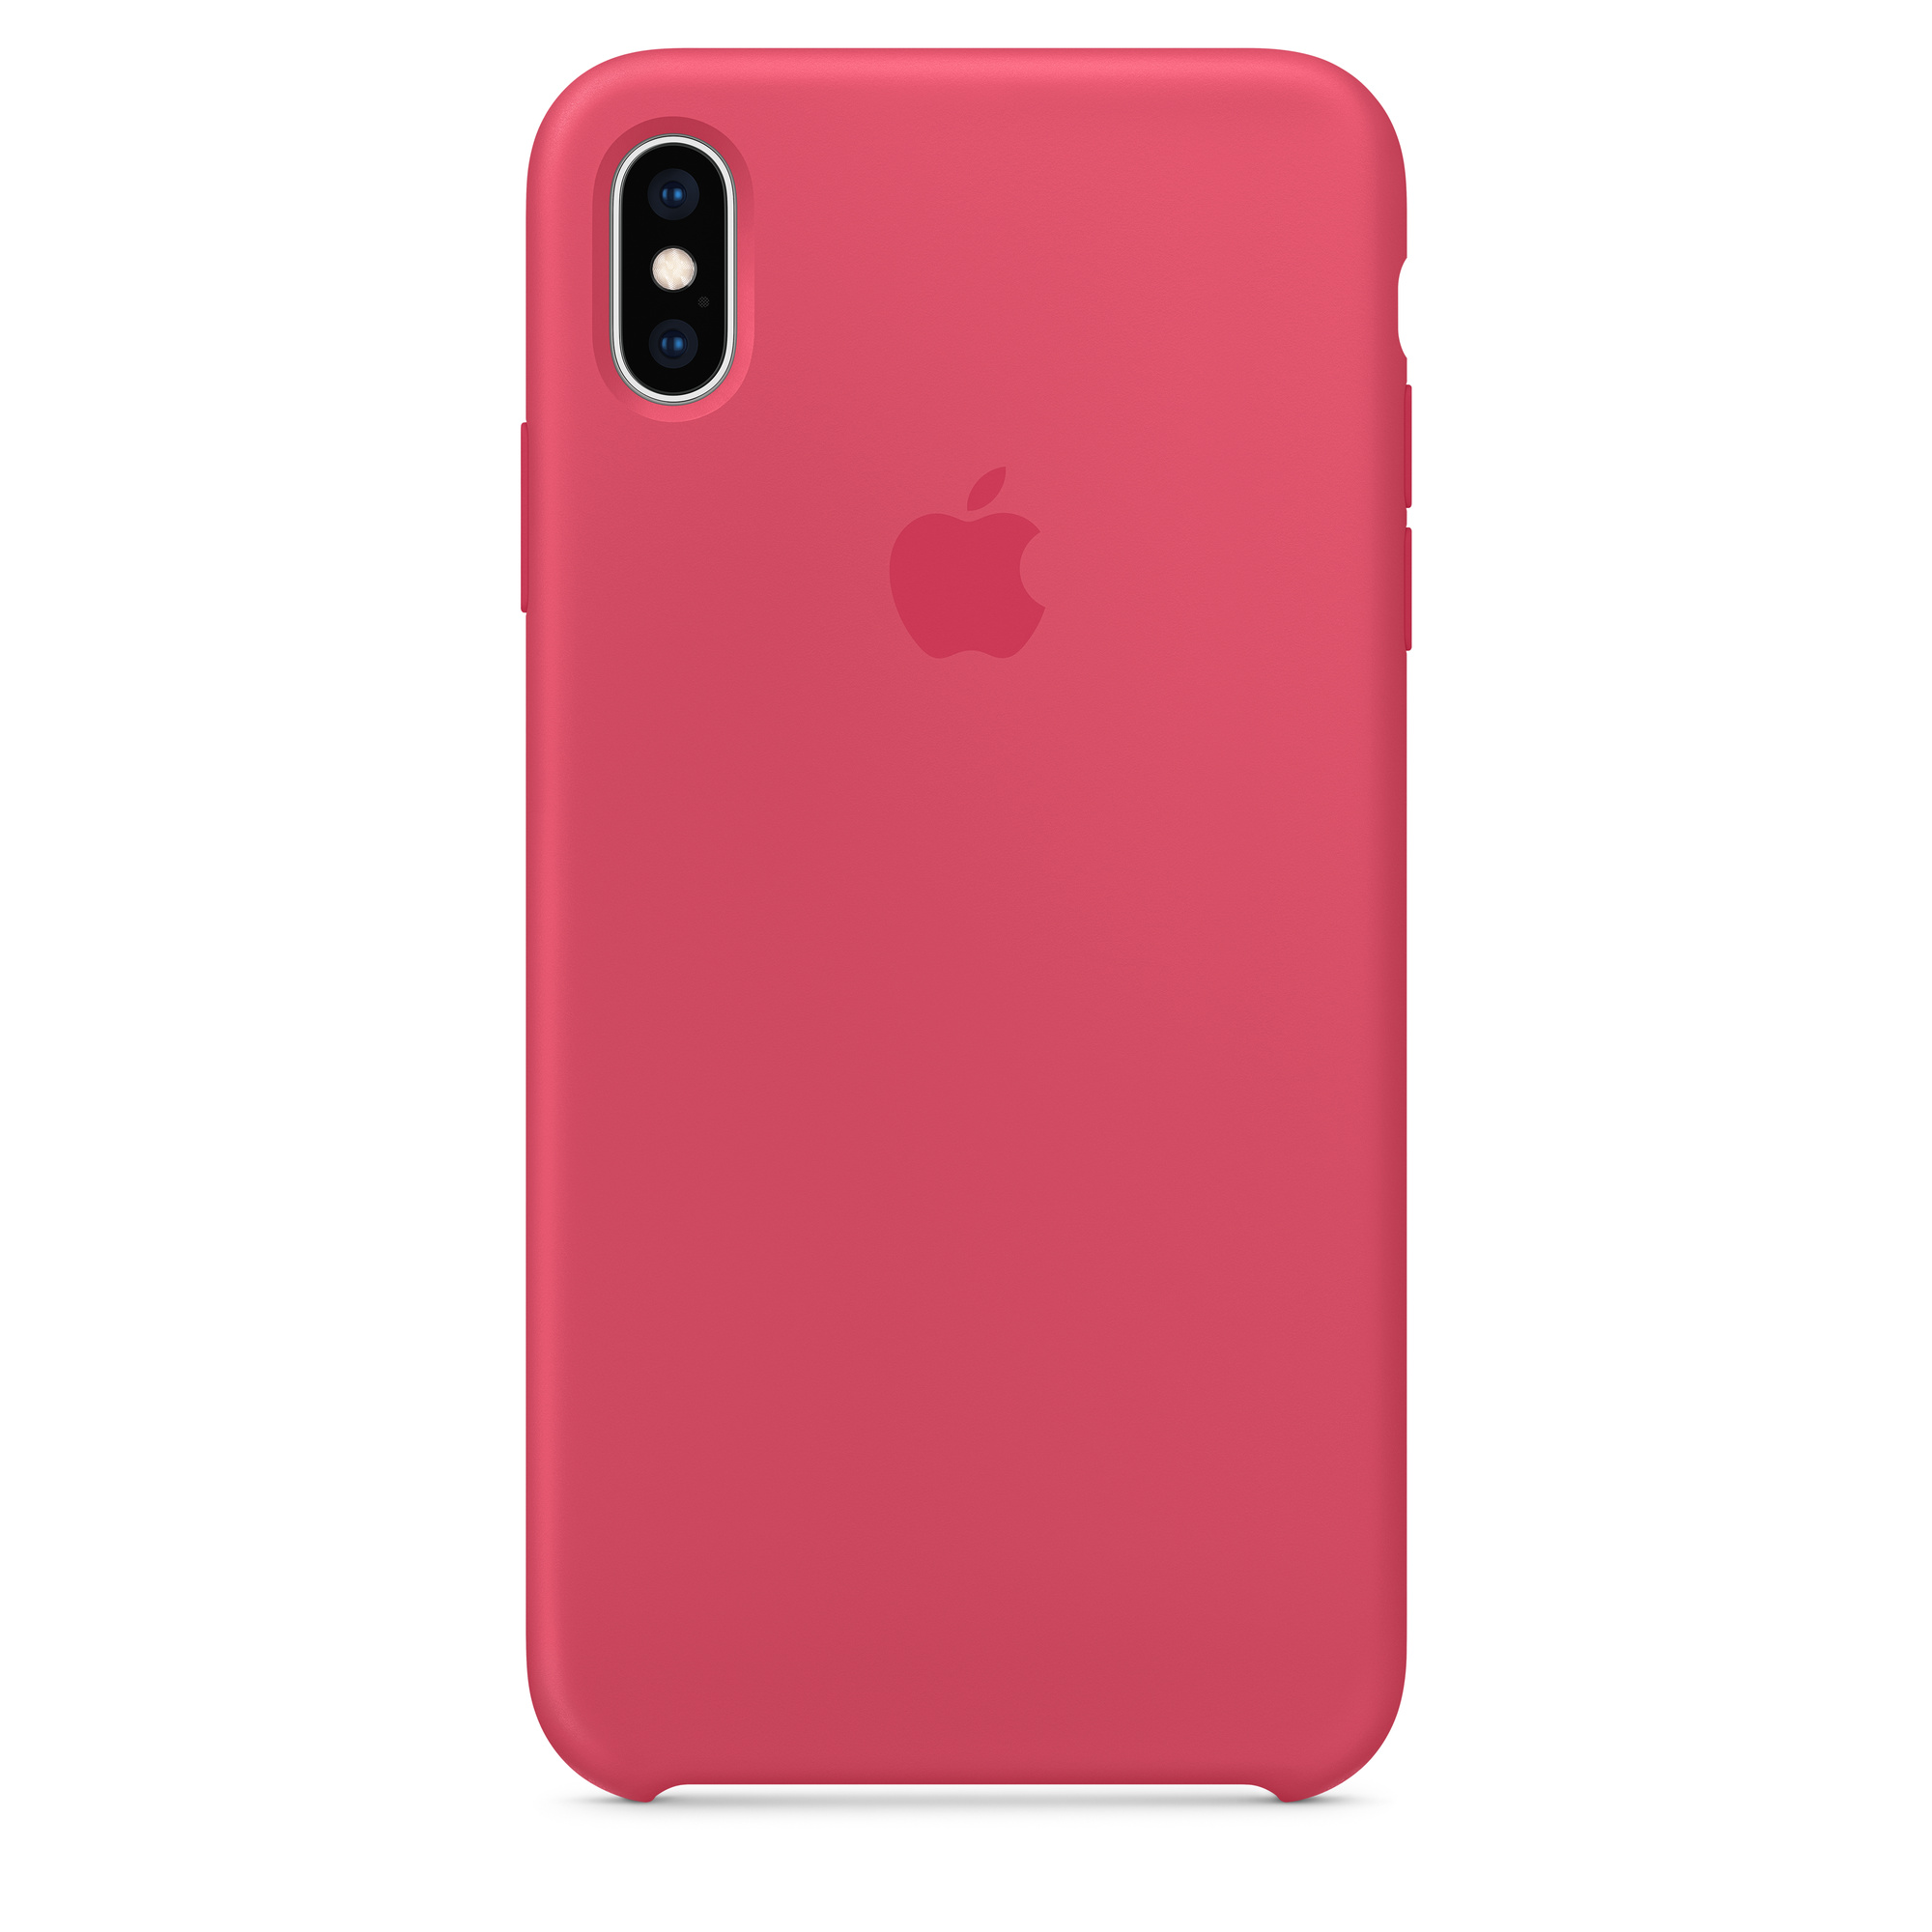 premium selection 3be71 4c7a9 iPhone XS Max Silicone Case - Hibiscus